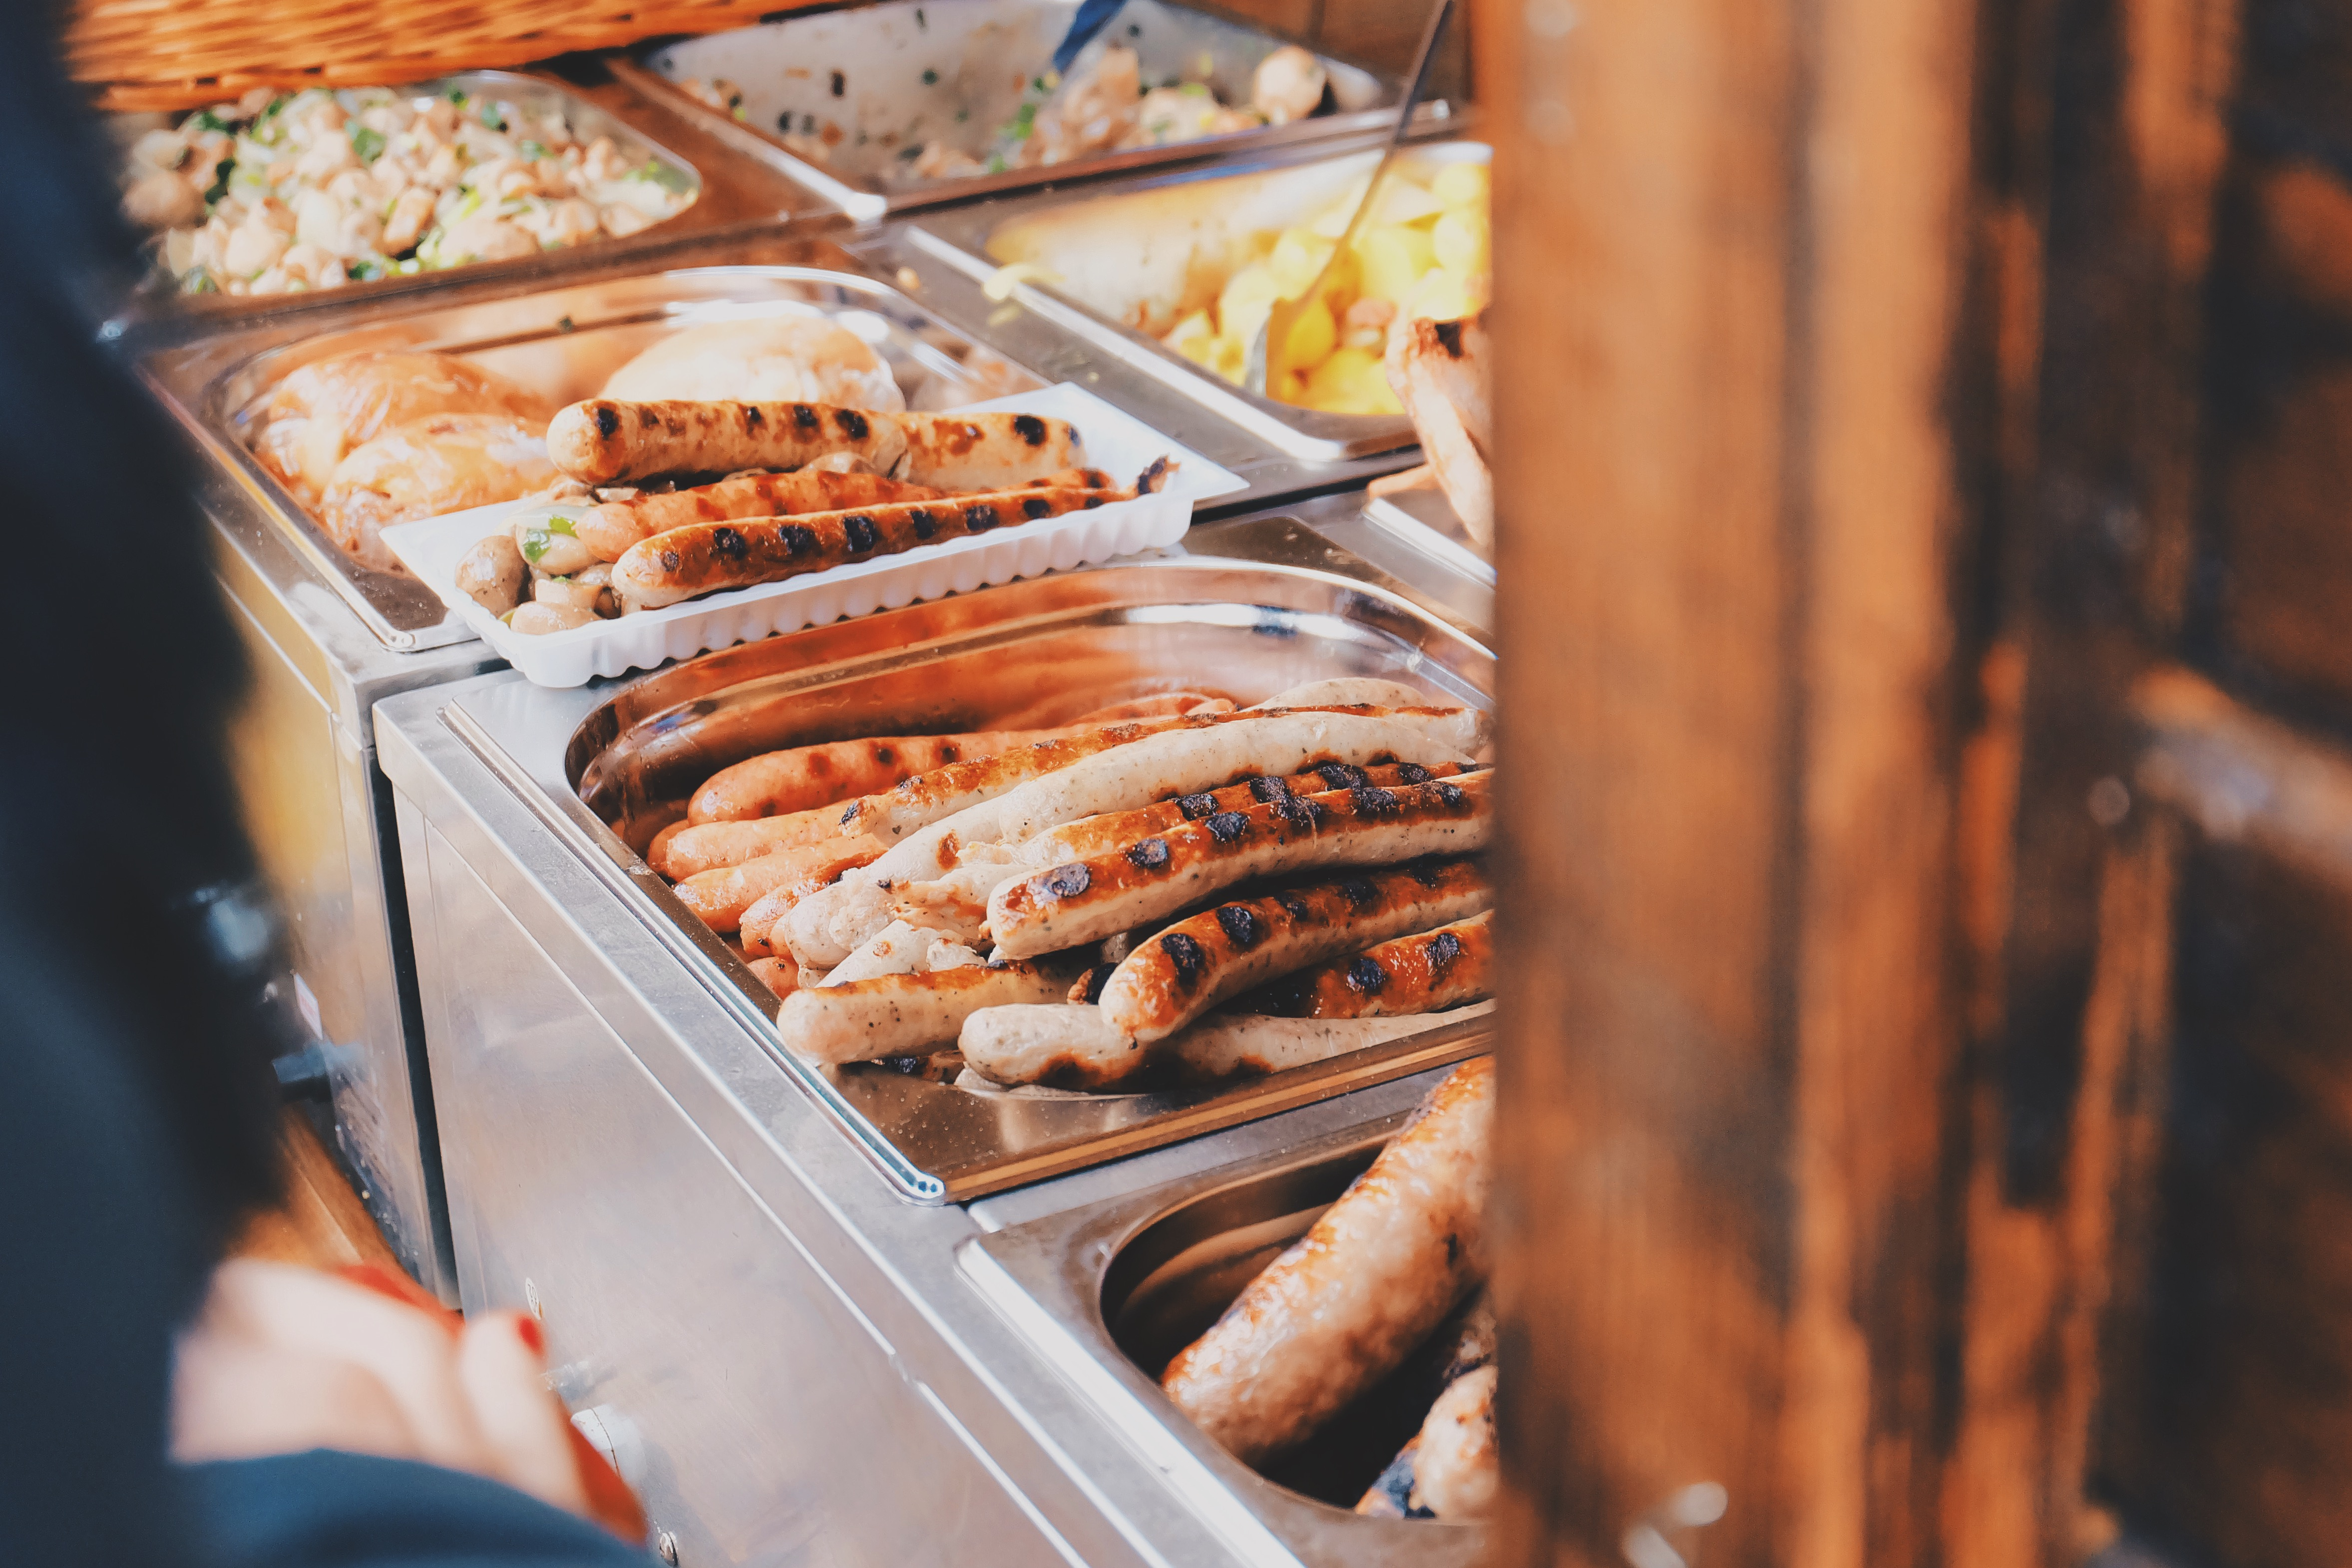 hot dogs ready to serve